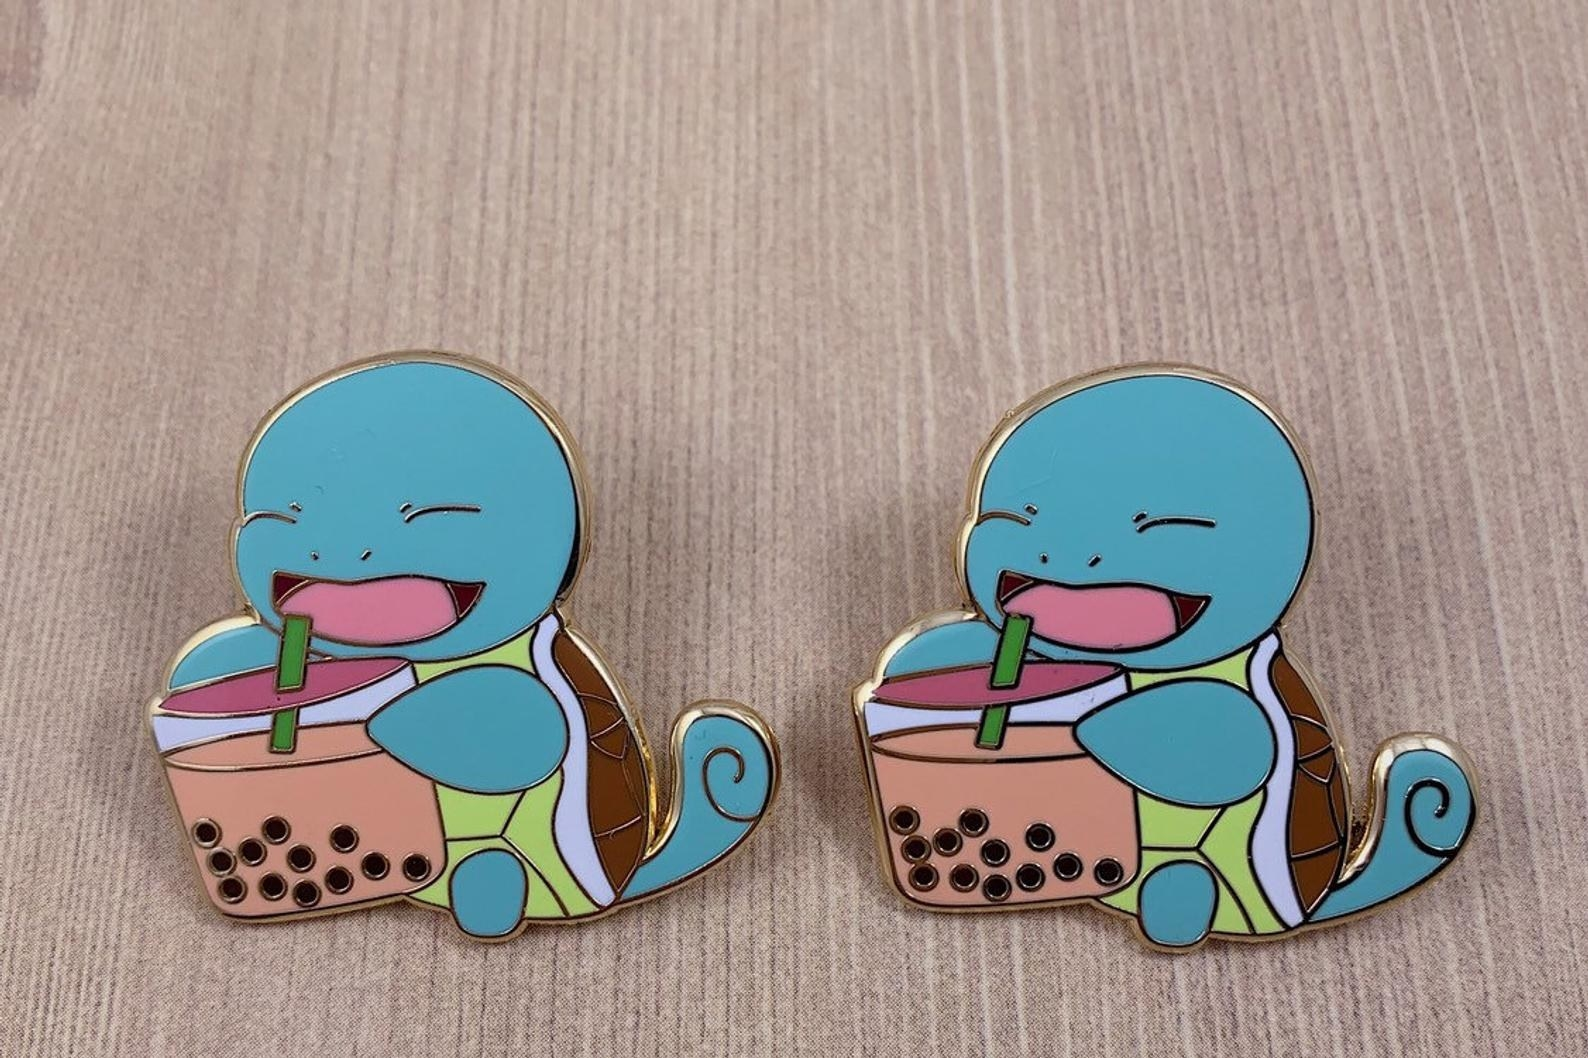 the Squirtle pins